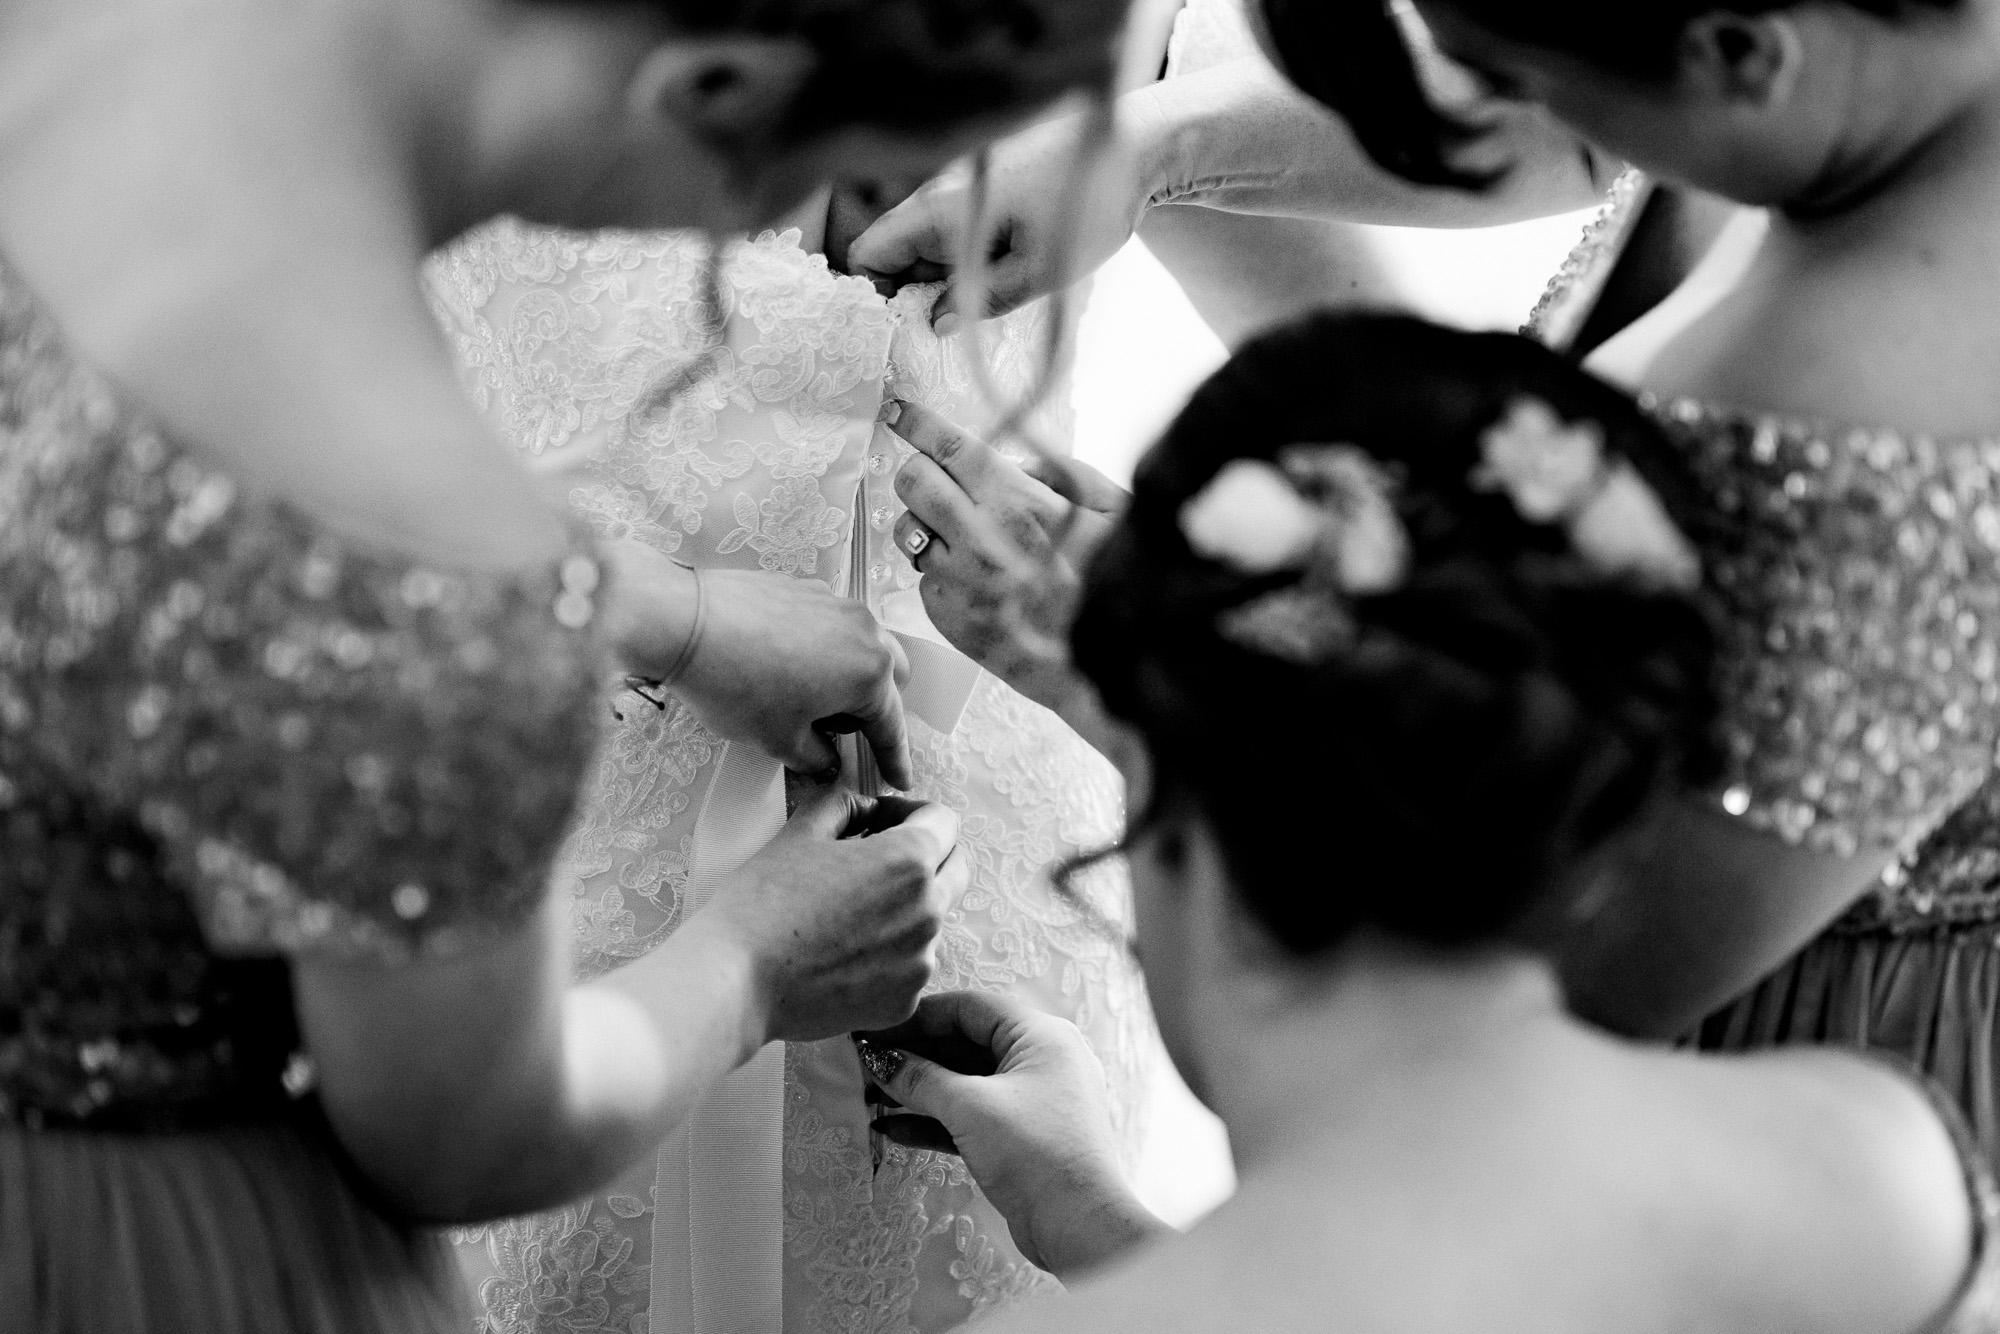 fastening up the wedding dress